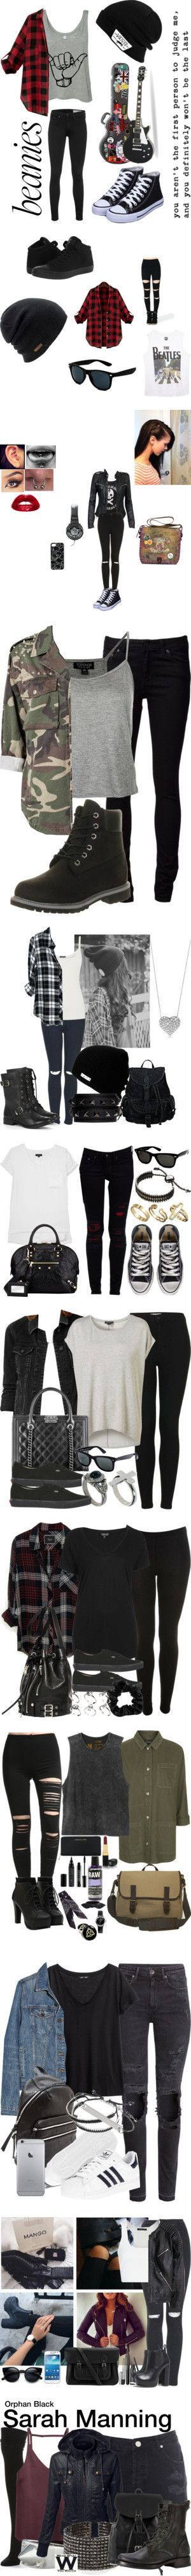 Punk Rock by pebble2000 on Polyvore featuring rag  bone, Vans, Converse, Coal, Wet Seal, Retrò, MuuBaa, Topshop, Marc by Marc Jacobs and Chanel